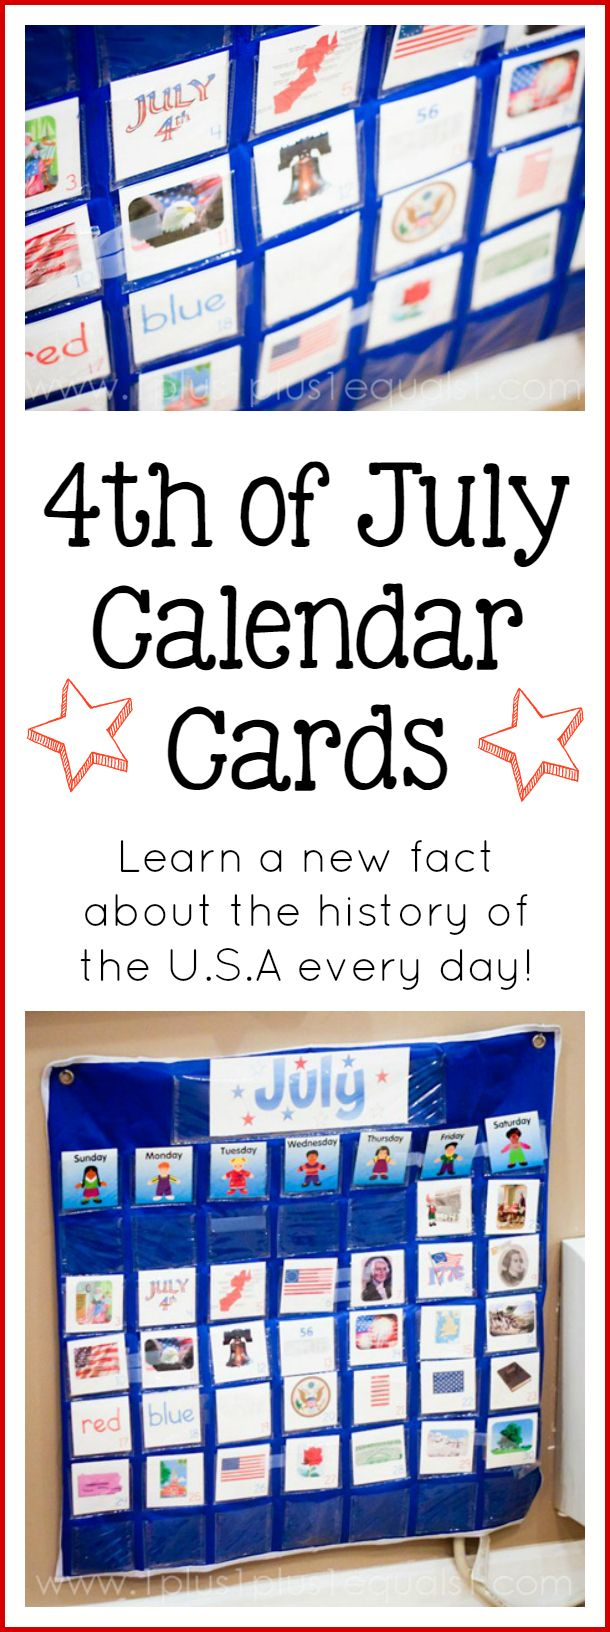 Calendar Ideas For July : Best ideas about july calendar on pinterest